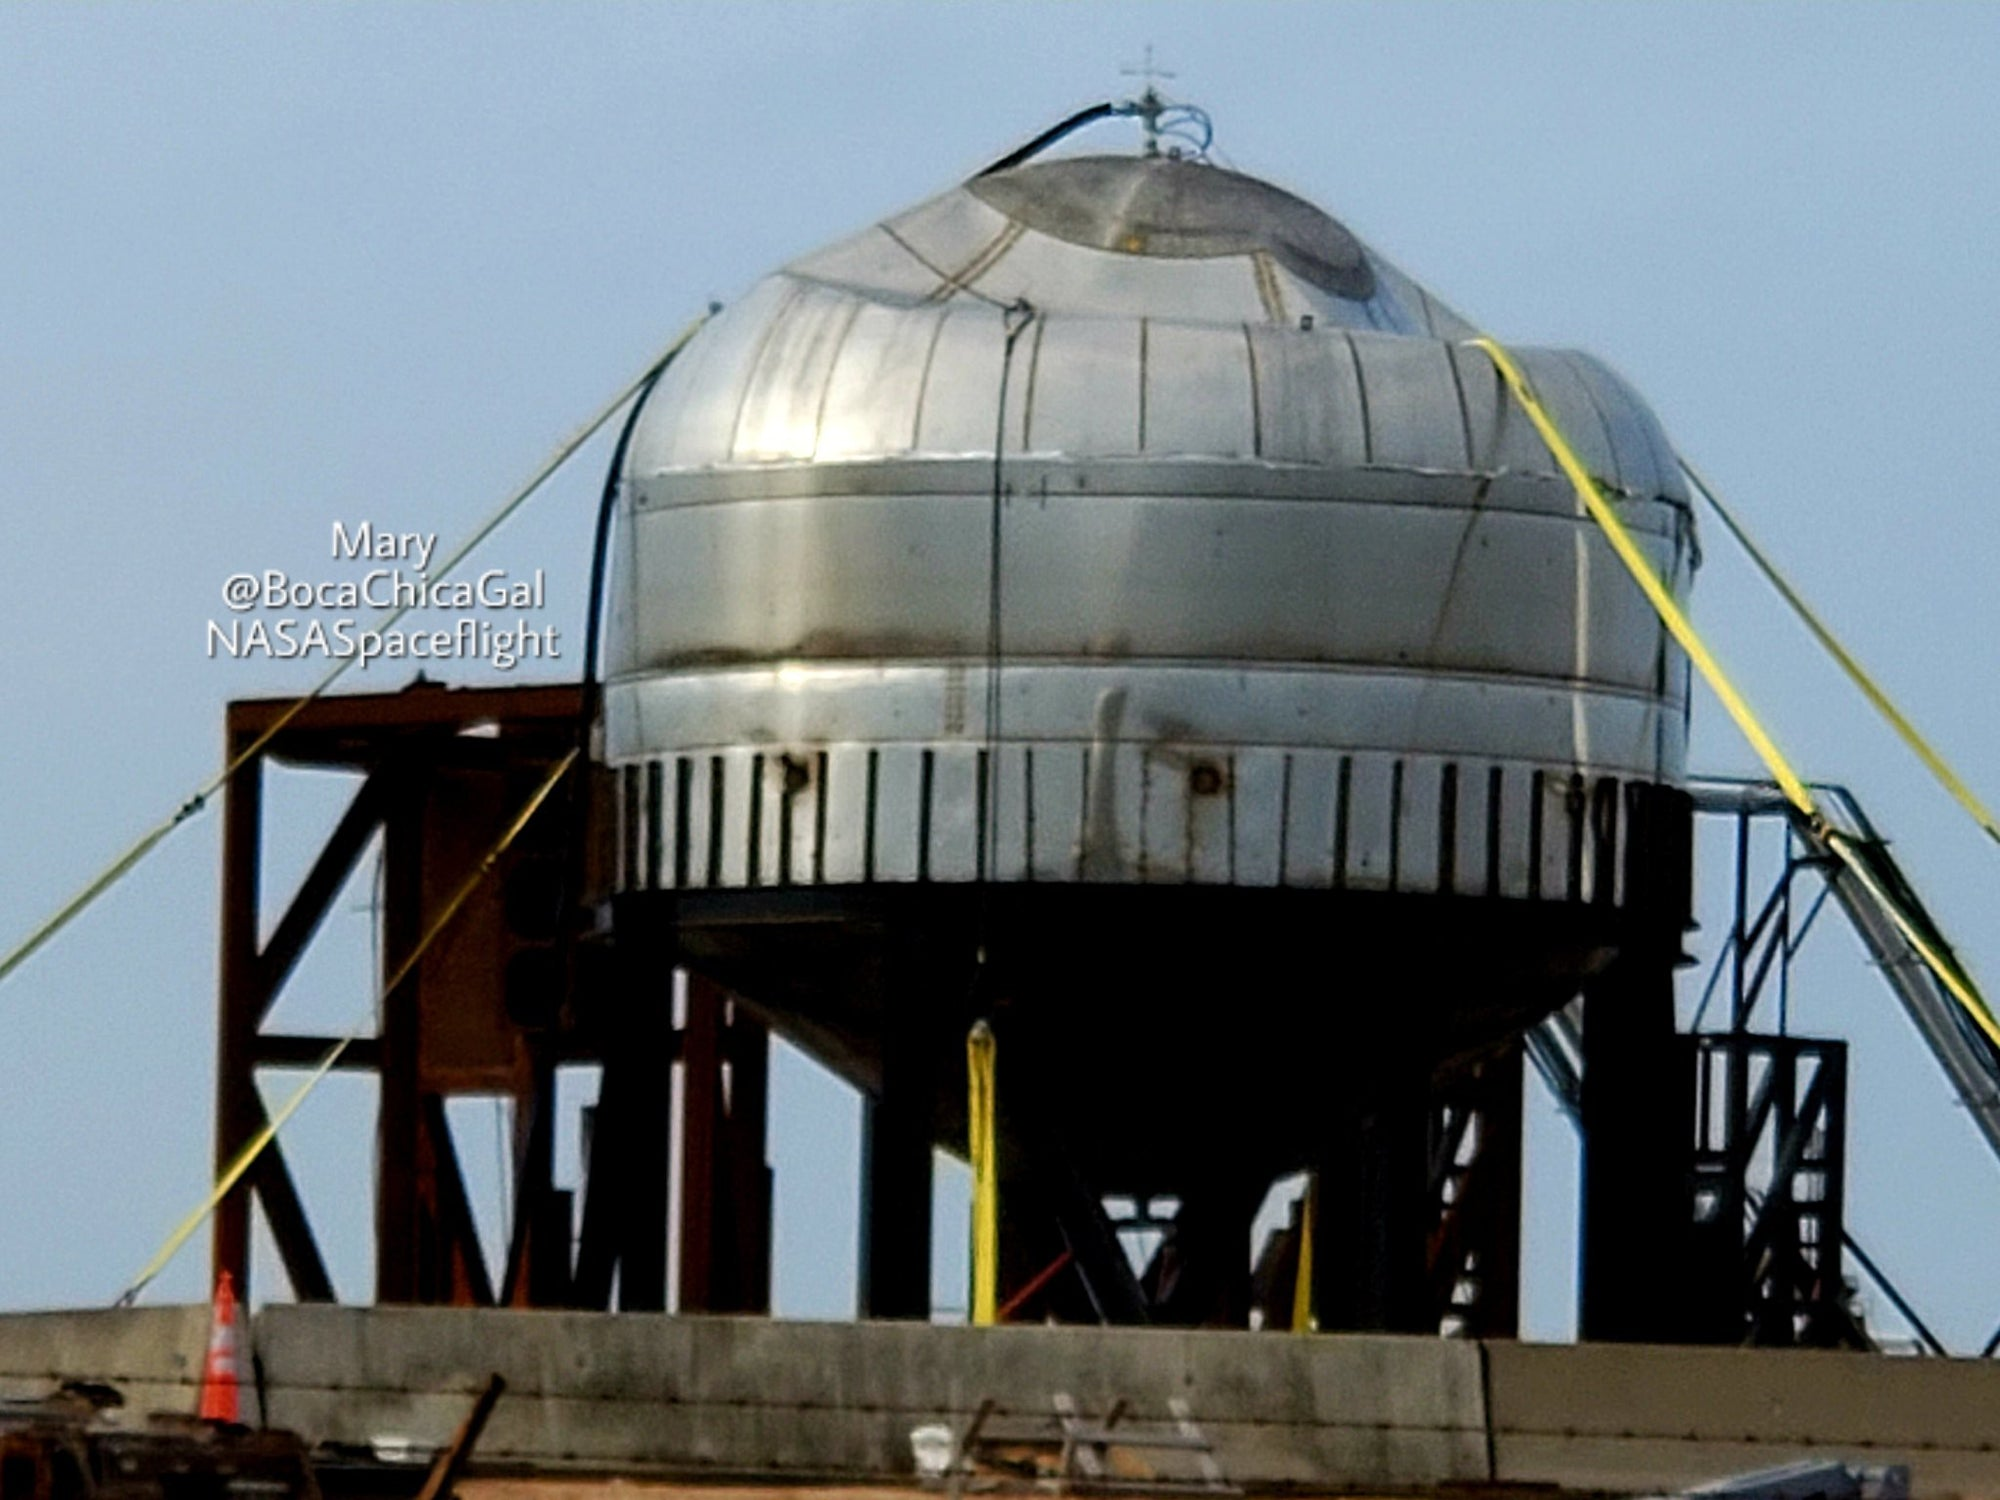 SpaceX conducted a pressure test on a Starship dome tank at Boca Chica today